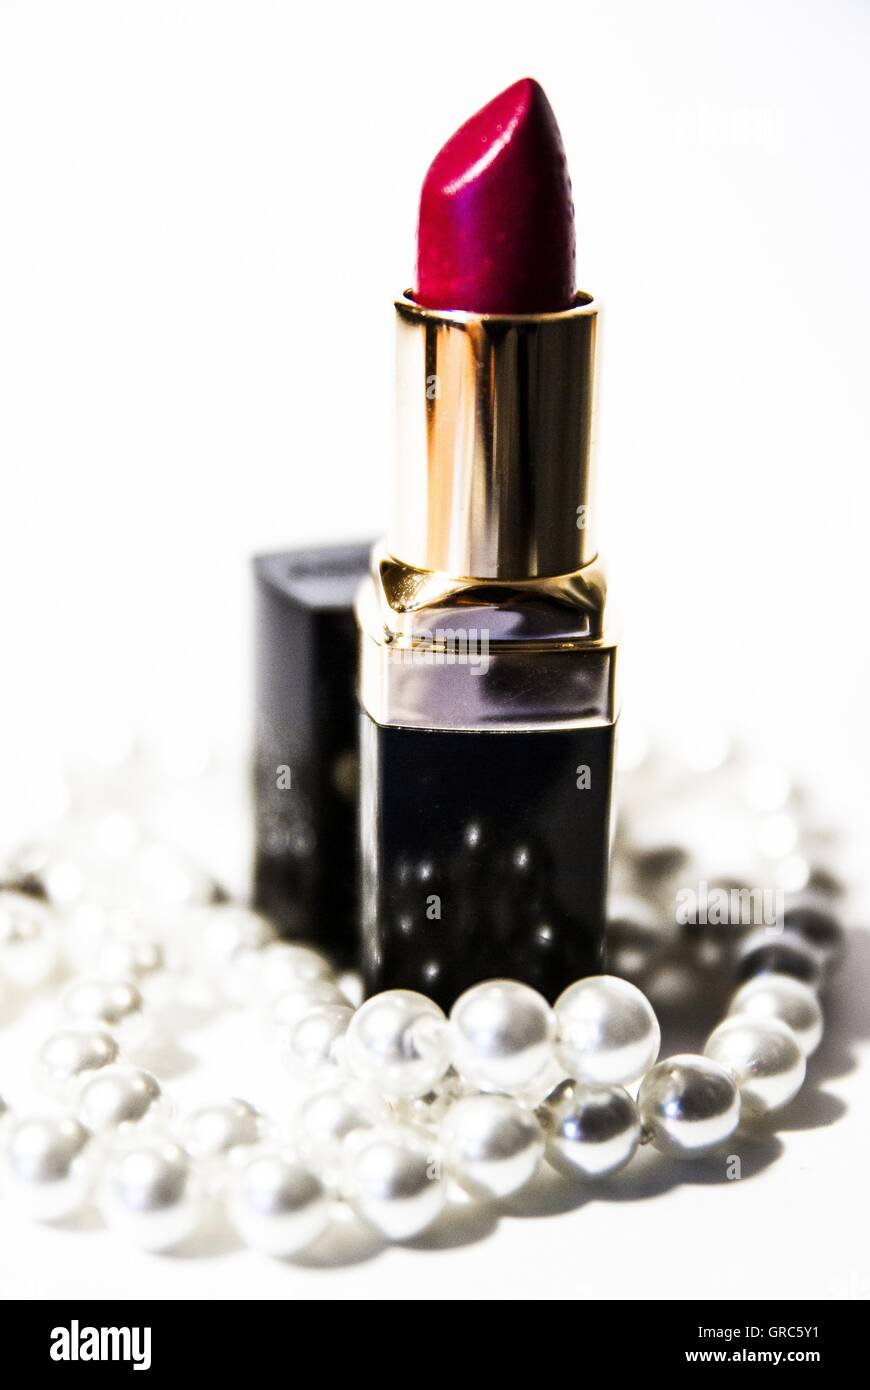 Lipstick Amp Pearls No. 1 - Stock Image